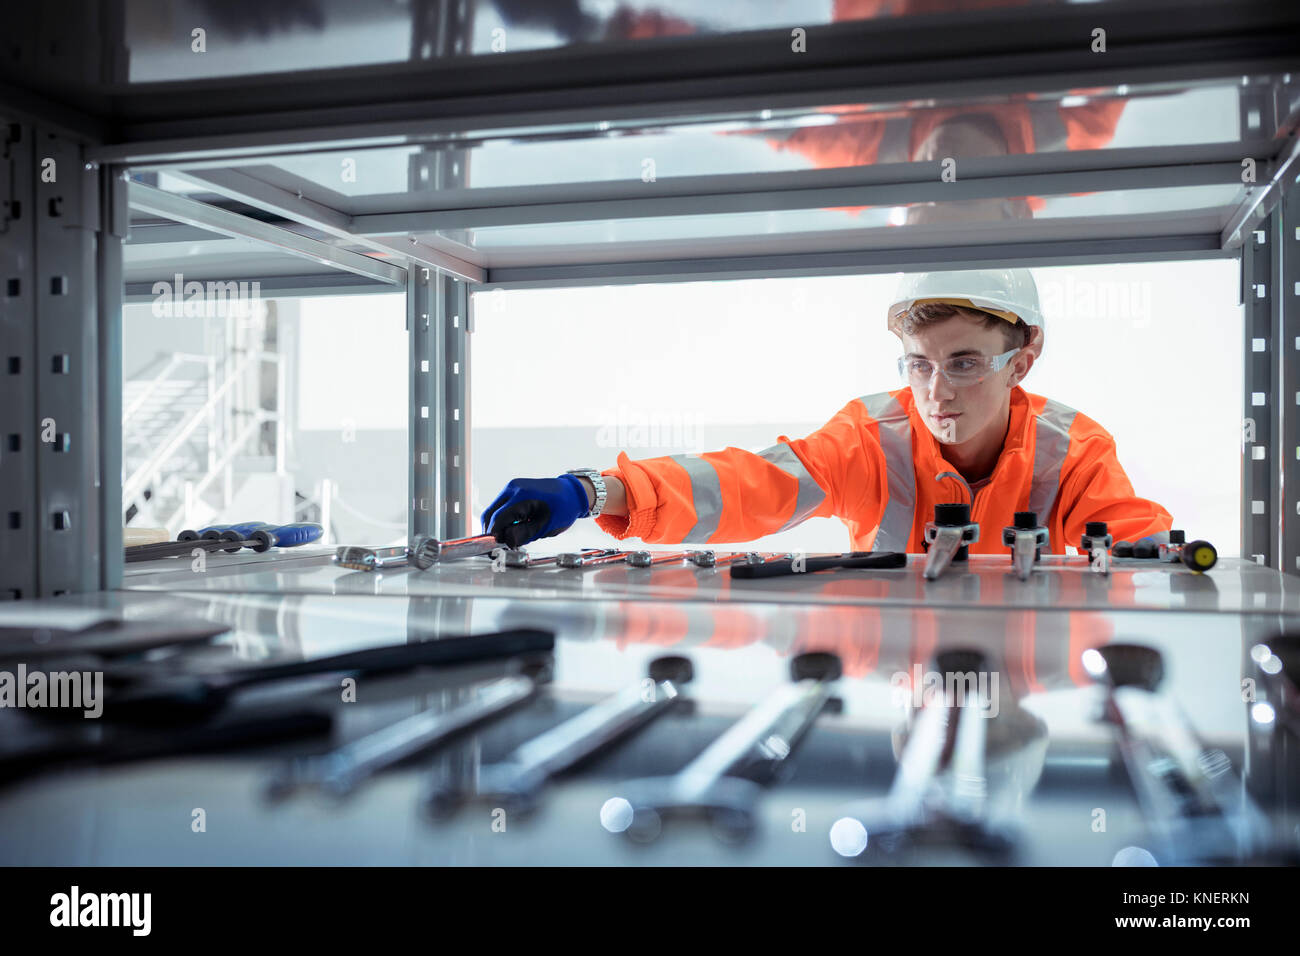 Apprentice selecting tools at railway engineering facility - Stock Image